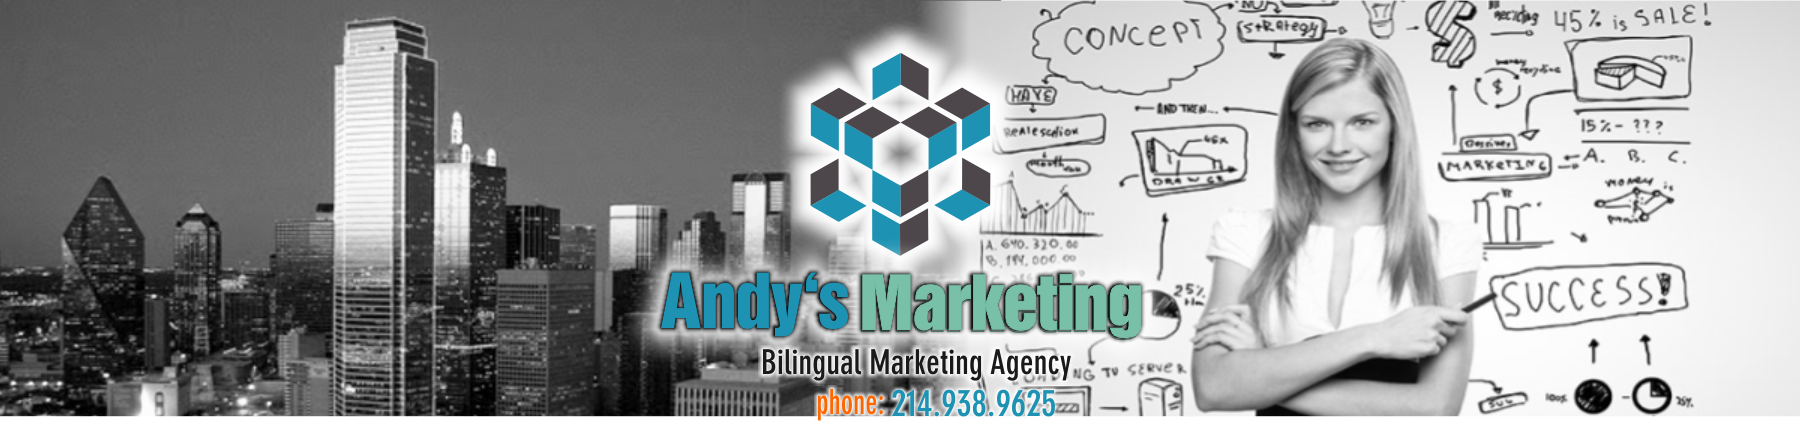 Bilingual Marketing Agency Tampa, Dallas, New York, Miami, Houston, Chiriqui, Panama, Bocas del Toro +1 813.421.3902 or 214.270.0674 or +507 67 27 27 51